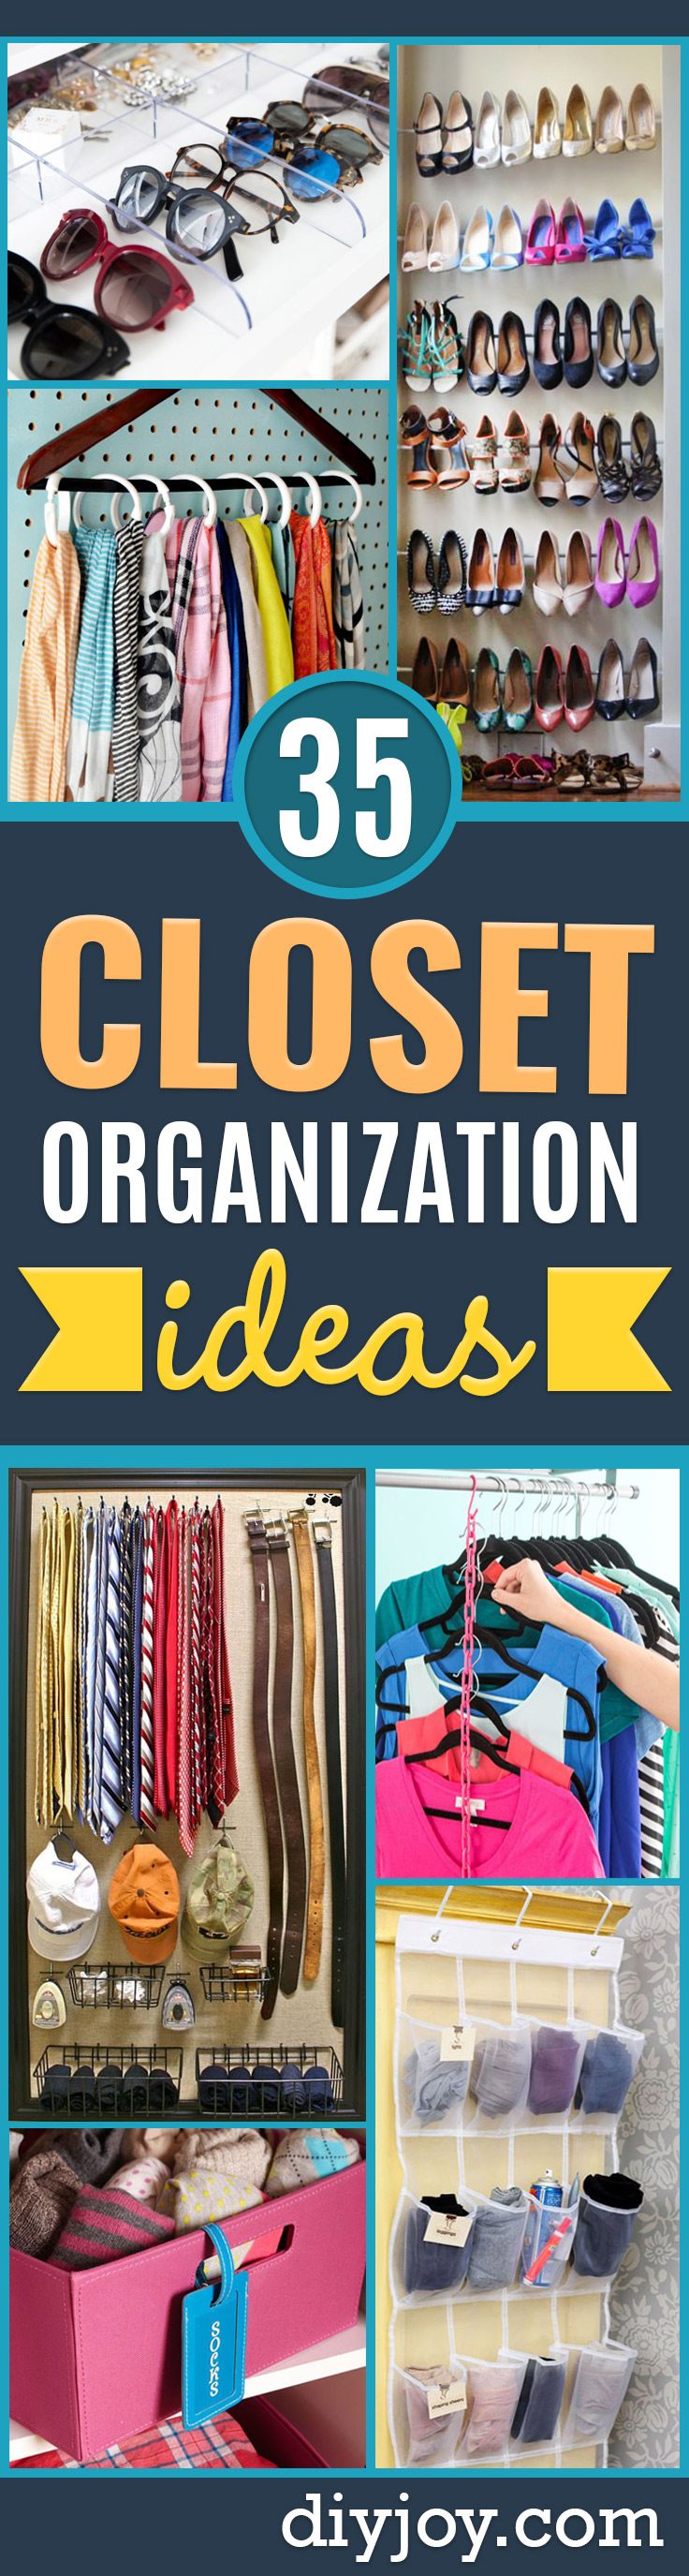 35 Best DIY Closet Organizing Ideas